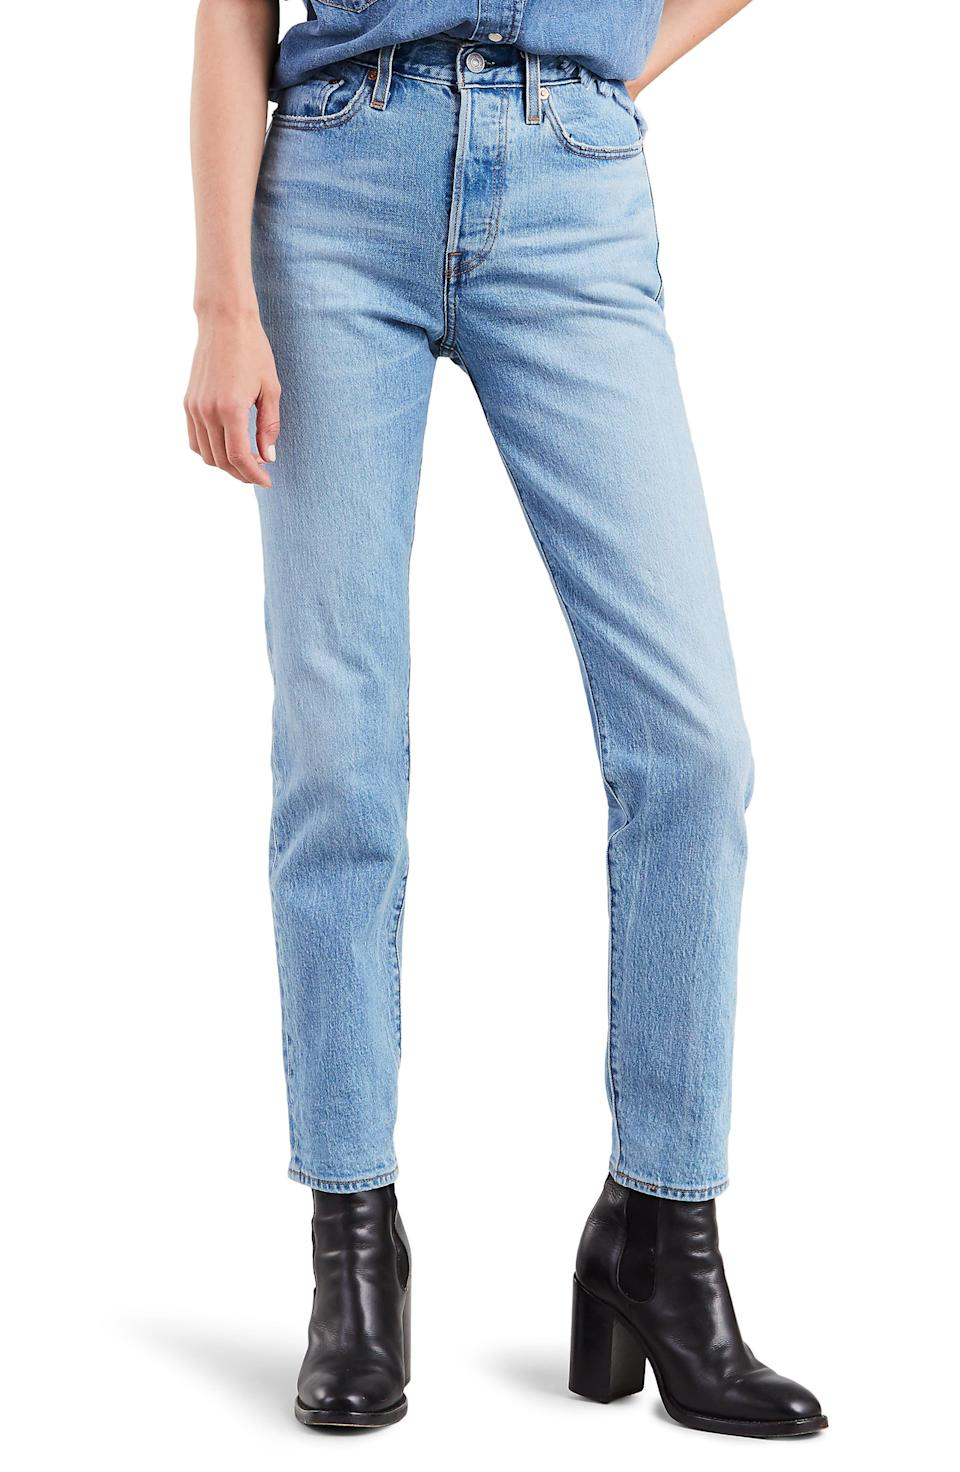 """<h3><strong>Levi's Wedgie Icon Fit Jeans</strong> </h3><br><strong>Why It's A Best Buy</strong>: Somehow mom jeans went from <a href=""""https://www.nbc.com/saturday-night-live/video/mom-jean/2872806"""" rel=""""nofollow noopener"""" target=""""_blank"""" data-ylk=""""slk:SNL spoof"""" class=""""link rapid-noclick-resp"""">SNL spoof</a> to need-to-have denim style. We're not sure how, we're just here for the comfortable high-rise ride — and this faded-cotton pair comes cut iån a high-waisted, ankle-cut style that's inspired by Levi's OG vintage.<br><br><strong>The Review</strong>: """"Love, love, LOVE! Having grown up in the '80s, I wore the infamous 501's like everyone else. To me, these jeans are like an updated, feminine version of that and I really love the way they fit. The color is fantastic, as it's the perfect shade of broken-in jeans. Very pleased!!"""" –<em> Nordstrom Reviewer</em><br><br><strong>Levis</strong> Wedgie Icon Fit High Waist Jeans, $, available at <a href=""""https://go.skimresources.com/?id=30283X879131&url=https%3A%2F%2Fwww.nordstrom.com%2Fs%2Flevis-wedgie-icon-fit-high-waist-jeans-tango-light%2F5444963"""" rel=""""nofollow noopener"""" target=""""_blank"""" data-ylk=""""slk:Nordstrom"""" class=""""link rapid-noclick-resp"""">Nordstrom</a>"""